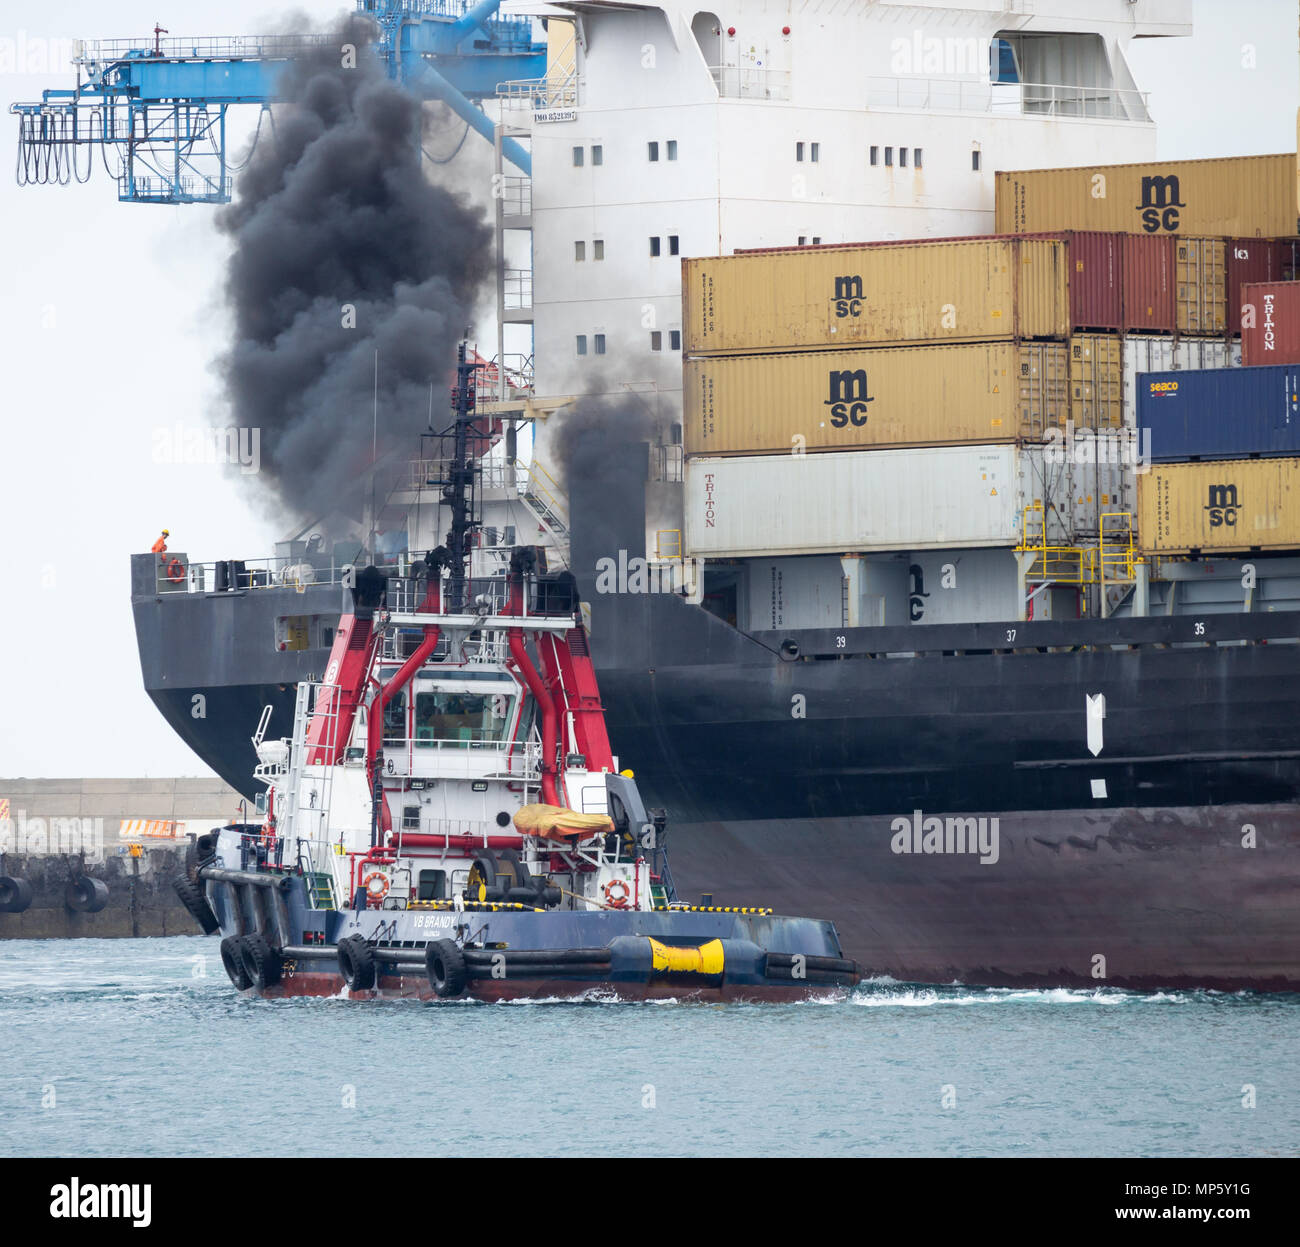 Tug boat belching out black smoke as it guides MSC Floriana container ship into port in Las Palmas on Gran Canaria Canary Islands, Spain - Stock Image